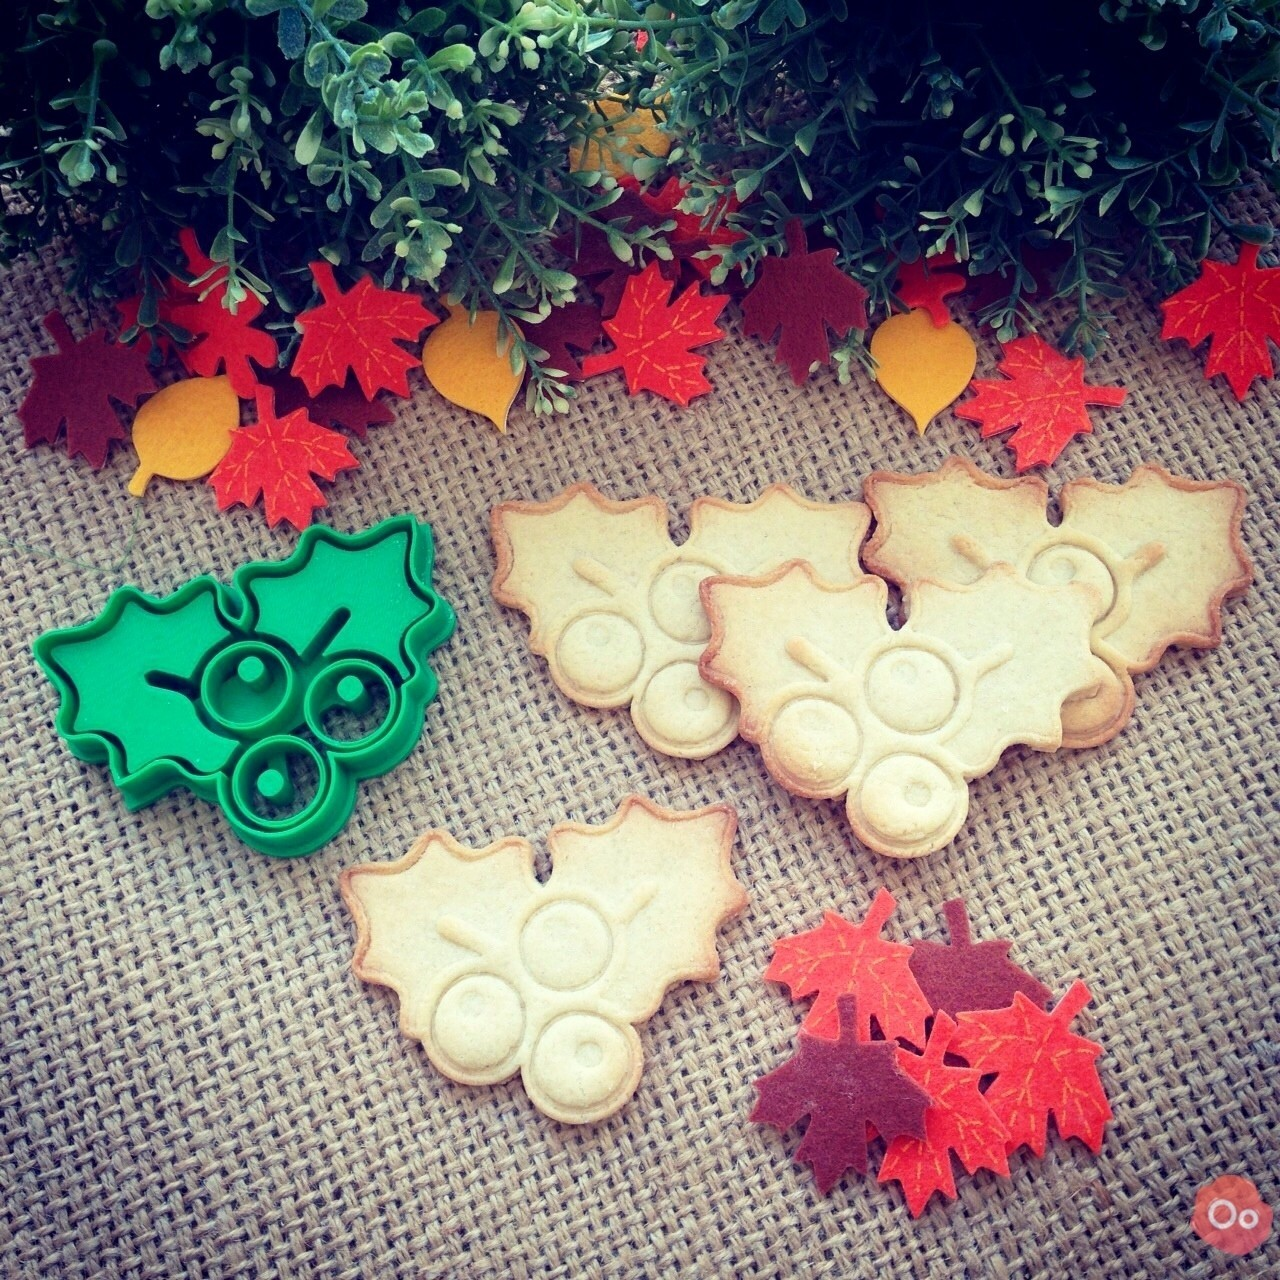 Mistletoe__Cookie_Cutter_3.jpg Download free STL file Mistletoe Cookie Cutter • 3D printing design, OogiMe